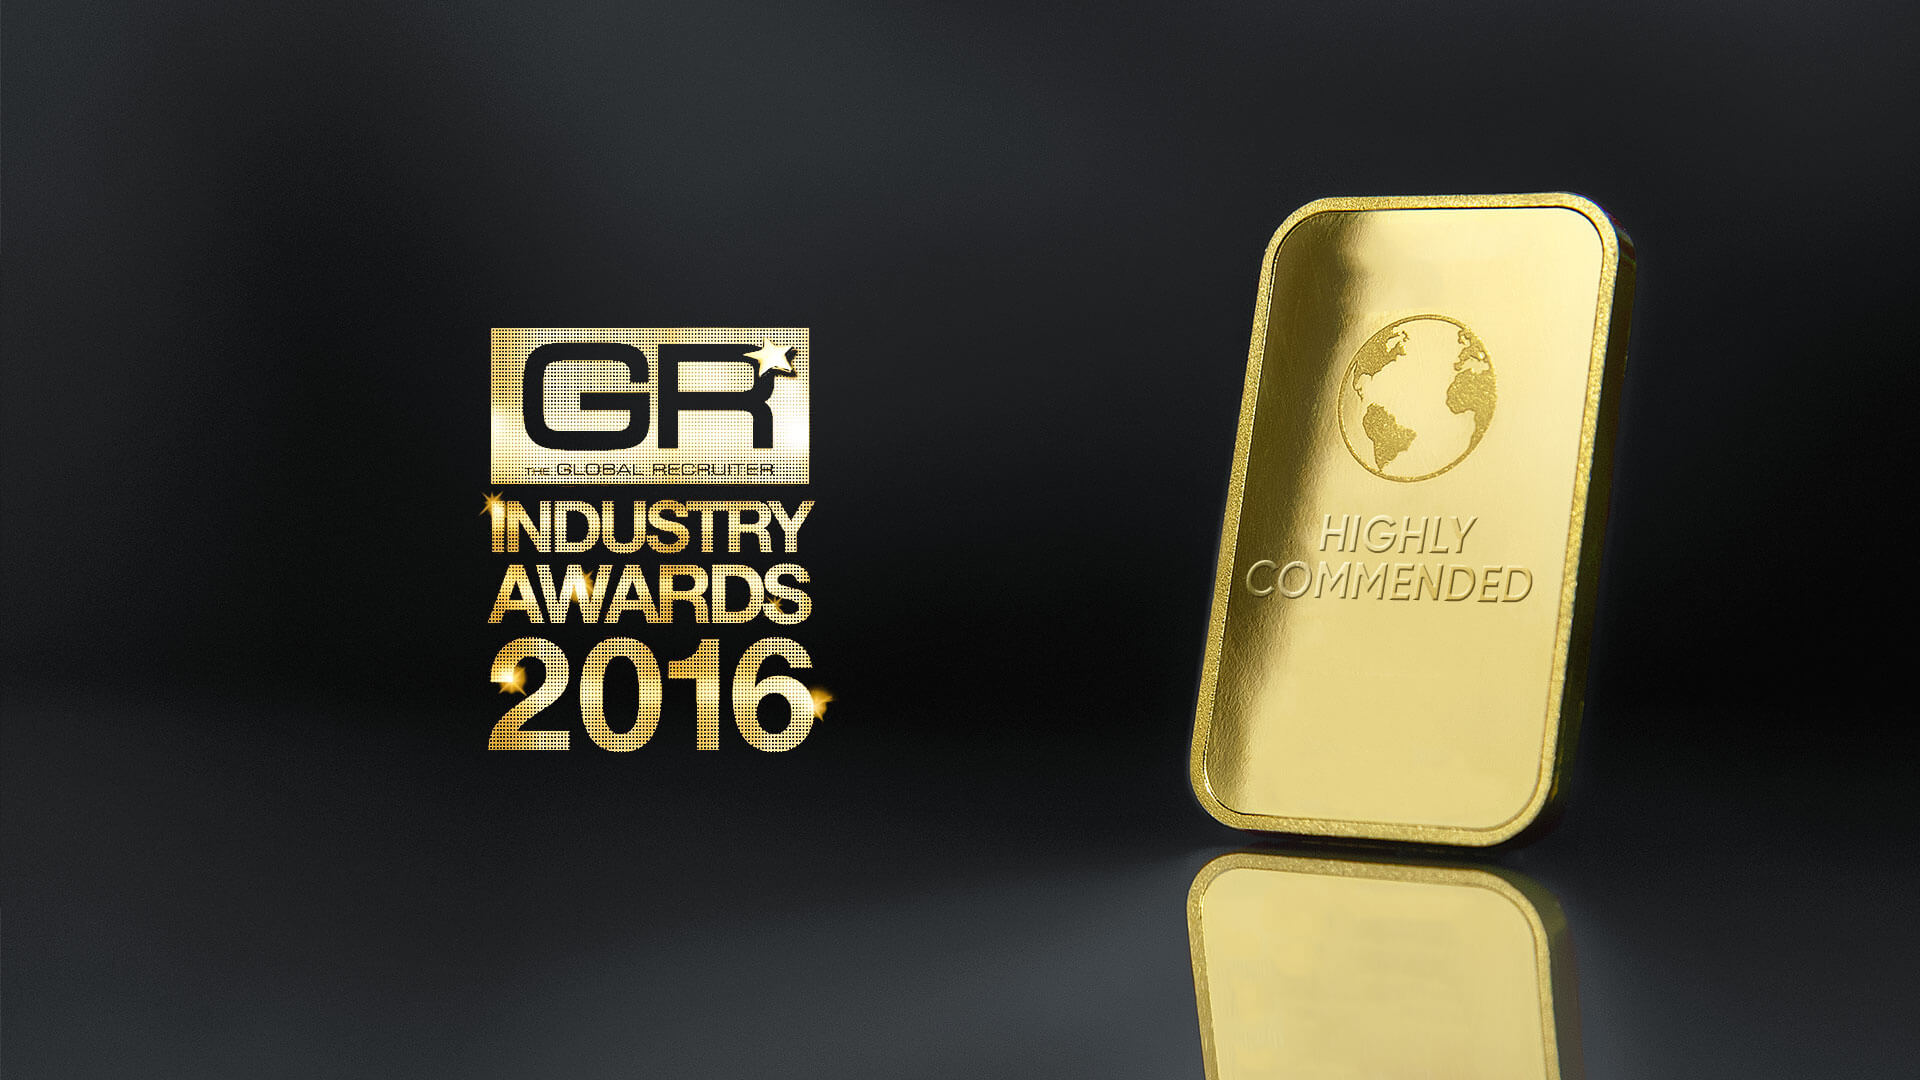 GR Awards Highly Commended